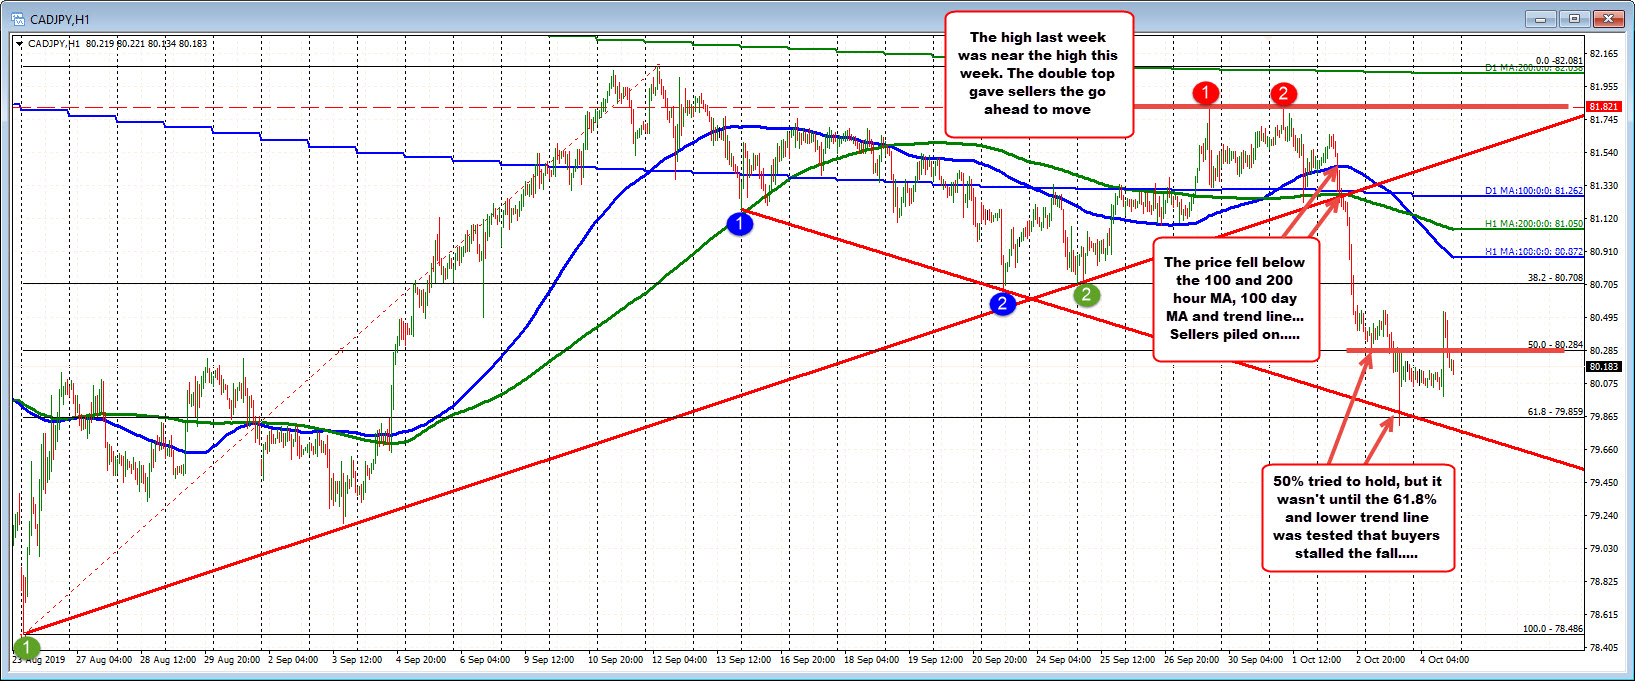 CADJPY is consolidating between the 50% and 61.8% retracement on the hourly chart